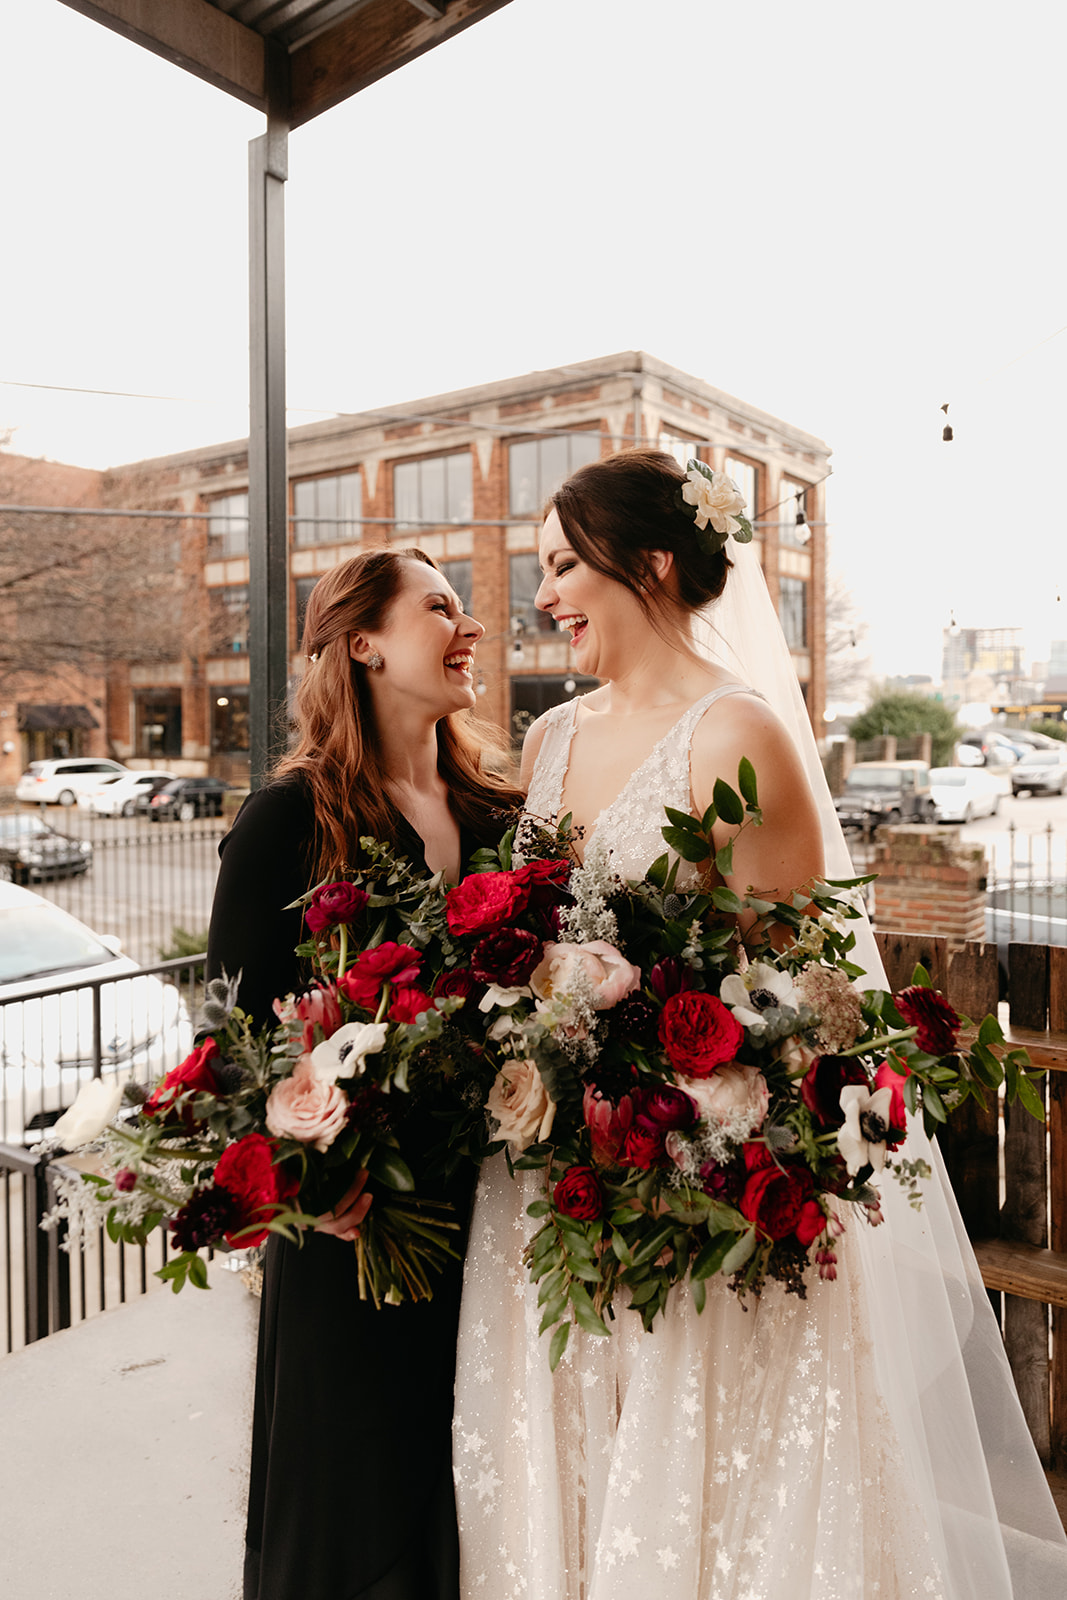 Black bridesmaid dresses with jewel tone and greenery bouquets in a natural, garden-inspired floral style. Nashville Wedding Florist.